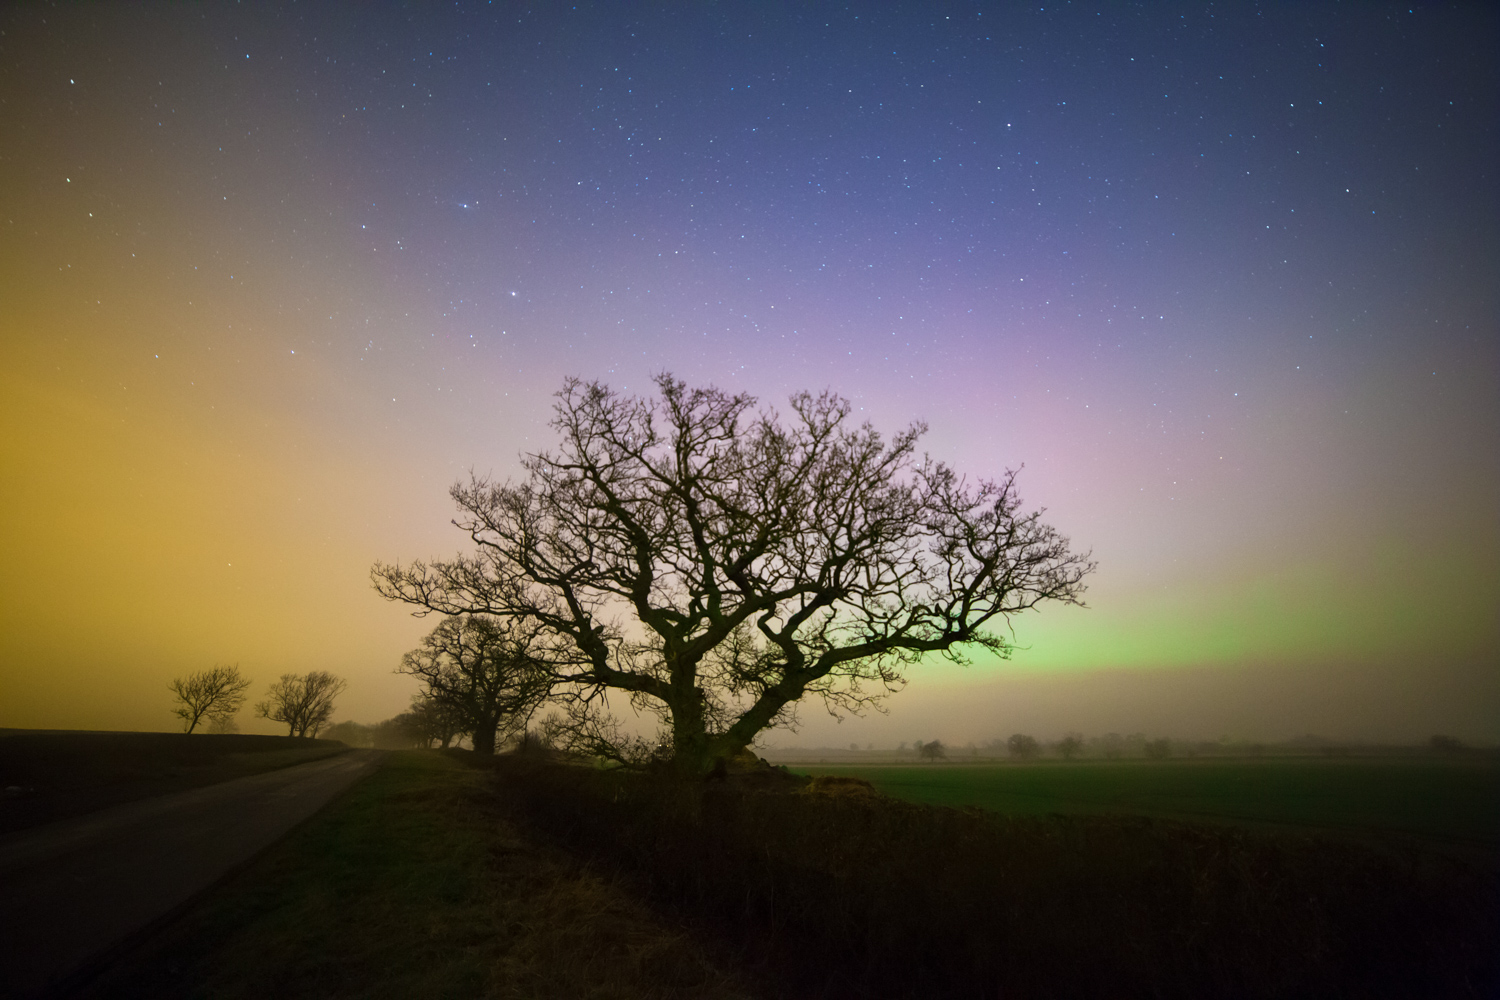 Nighttime photography - stars and tree at night